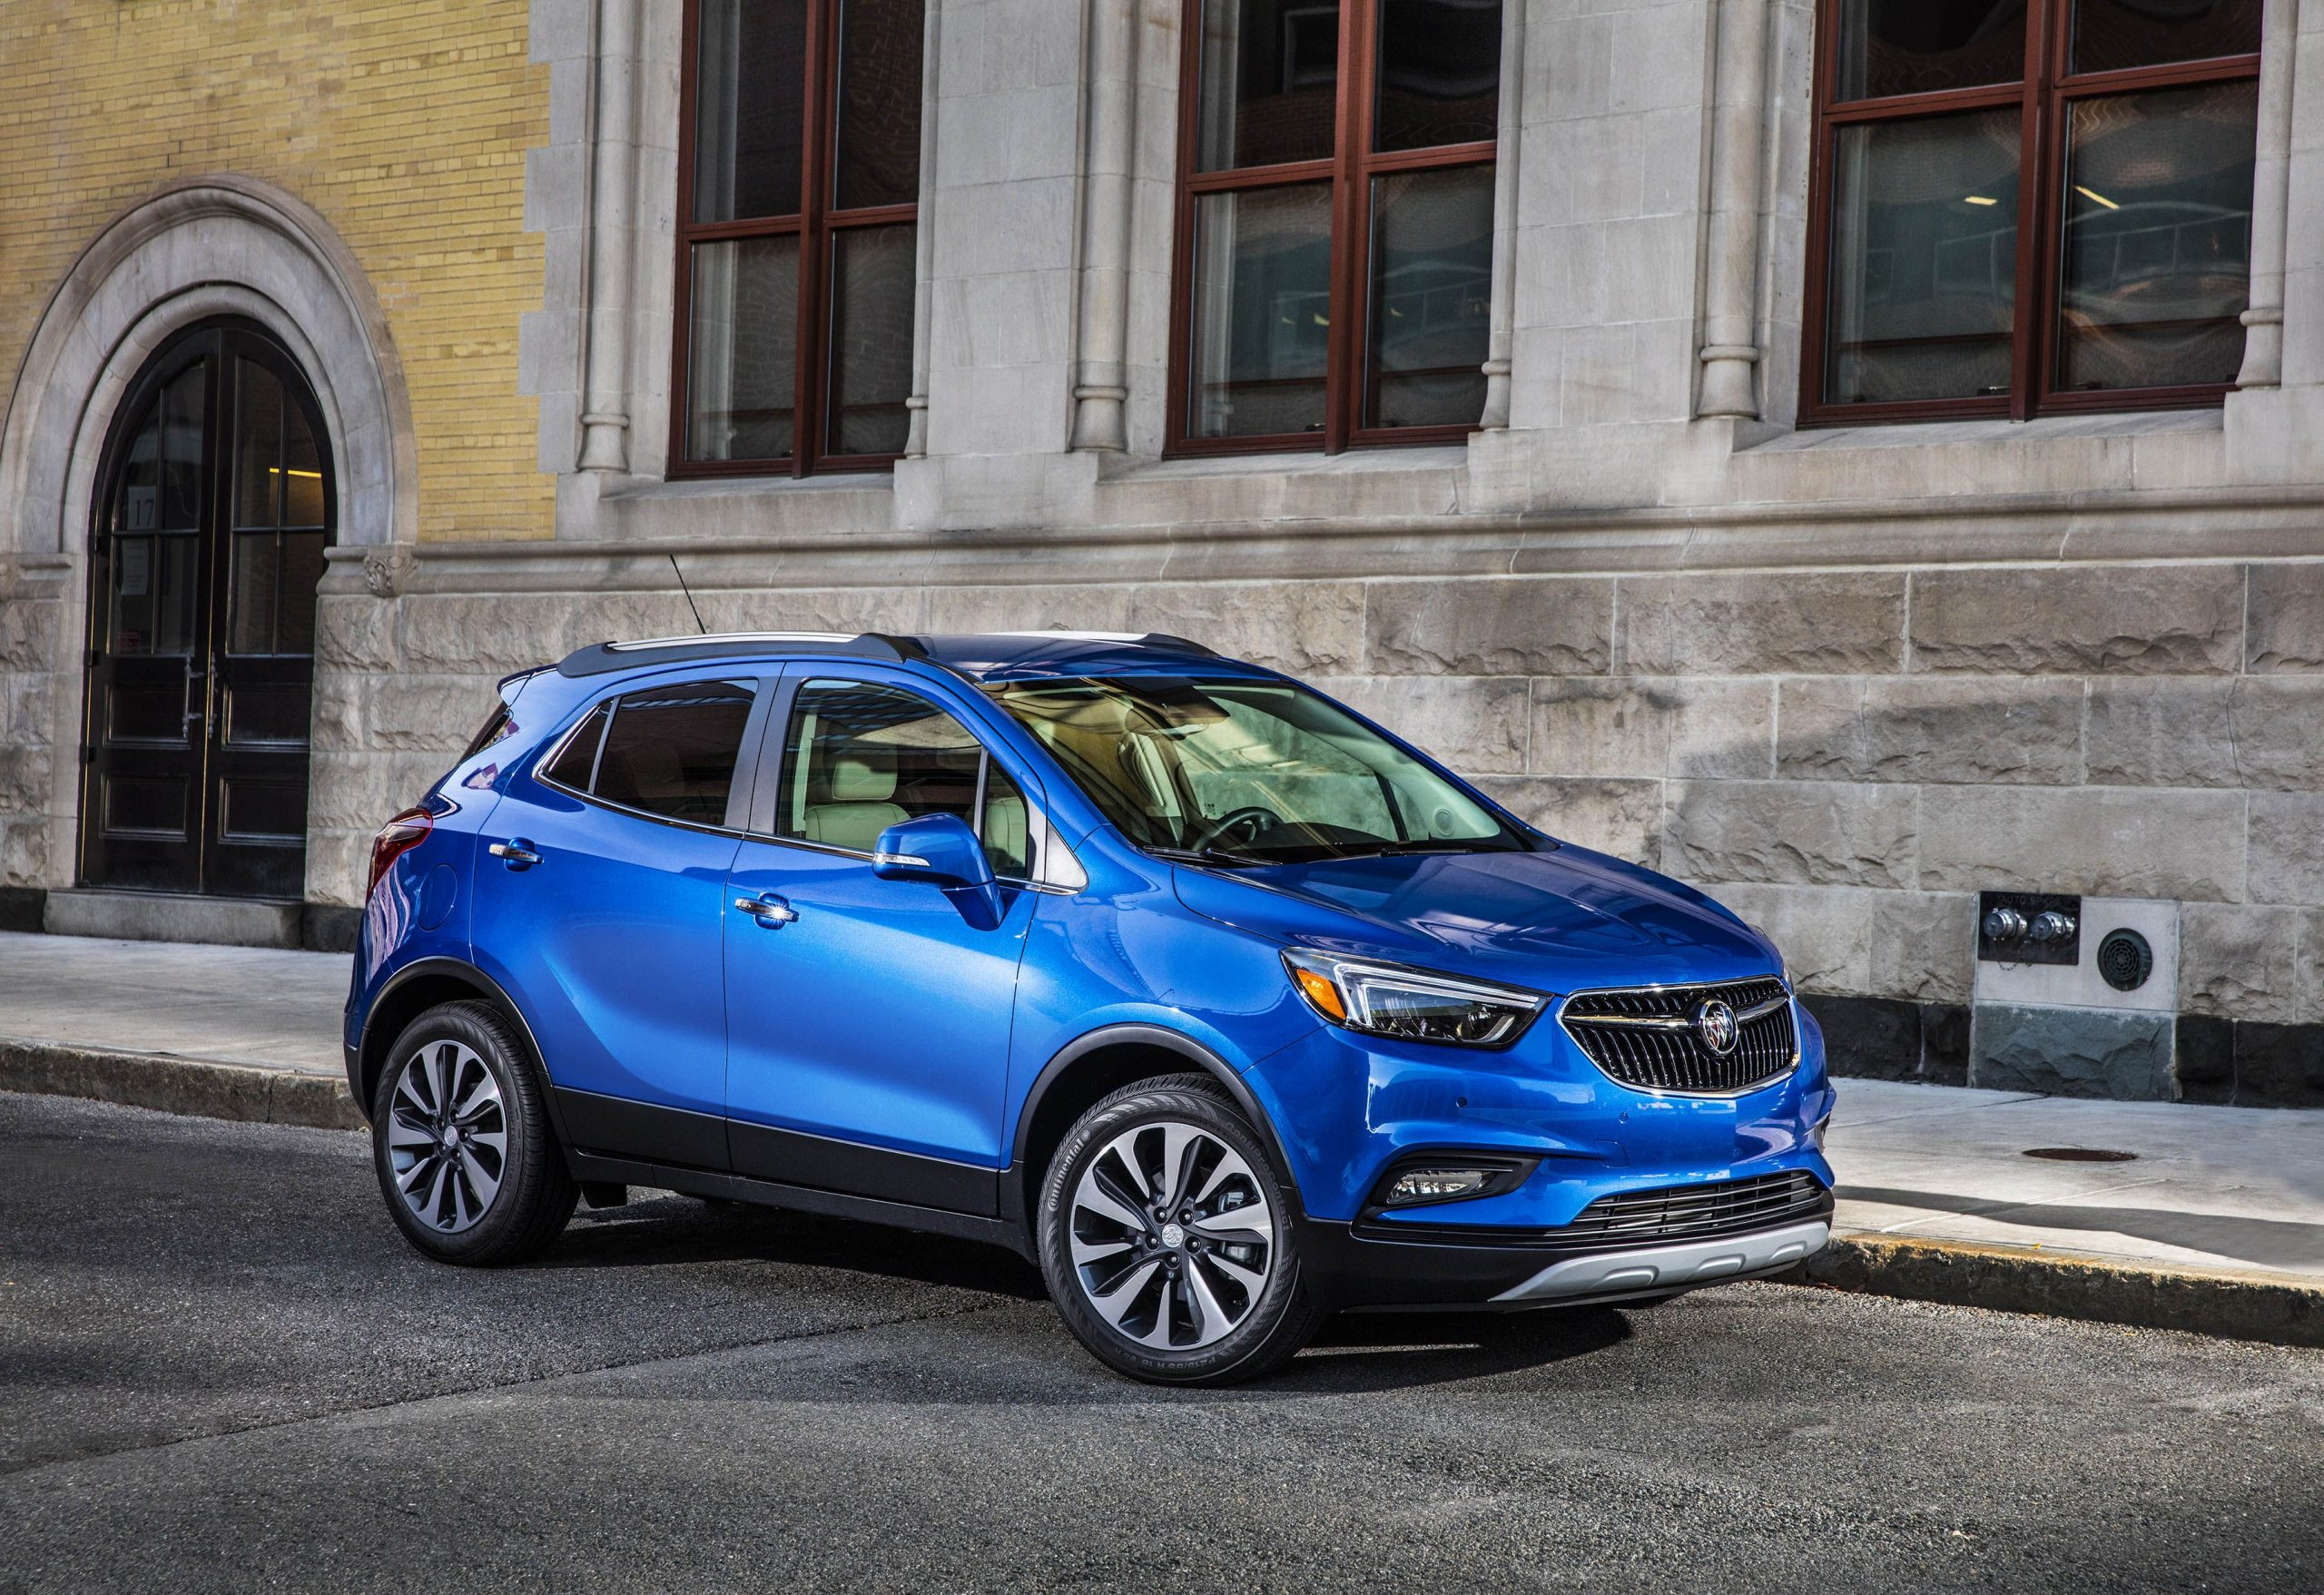 2020 Buick Encore Review, Pricing, And Specs New 2022 Buick Encore Essence Price, Interior, Dimensions